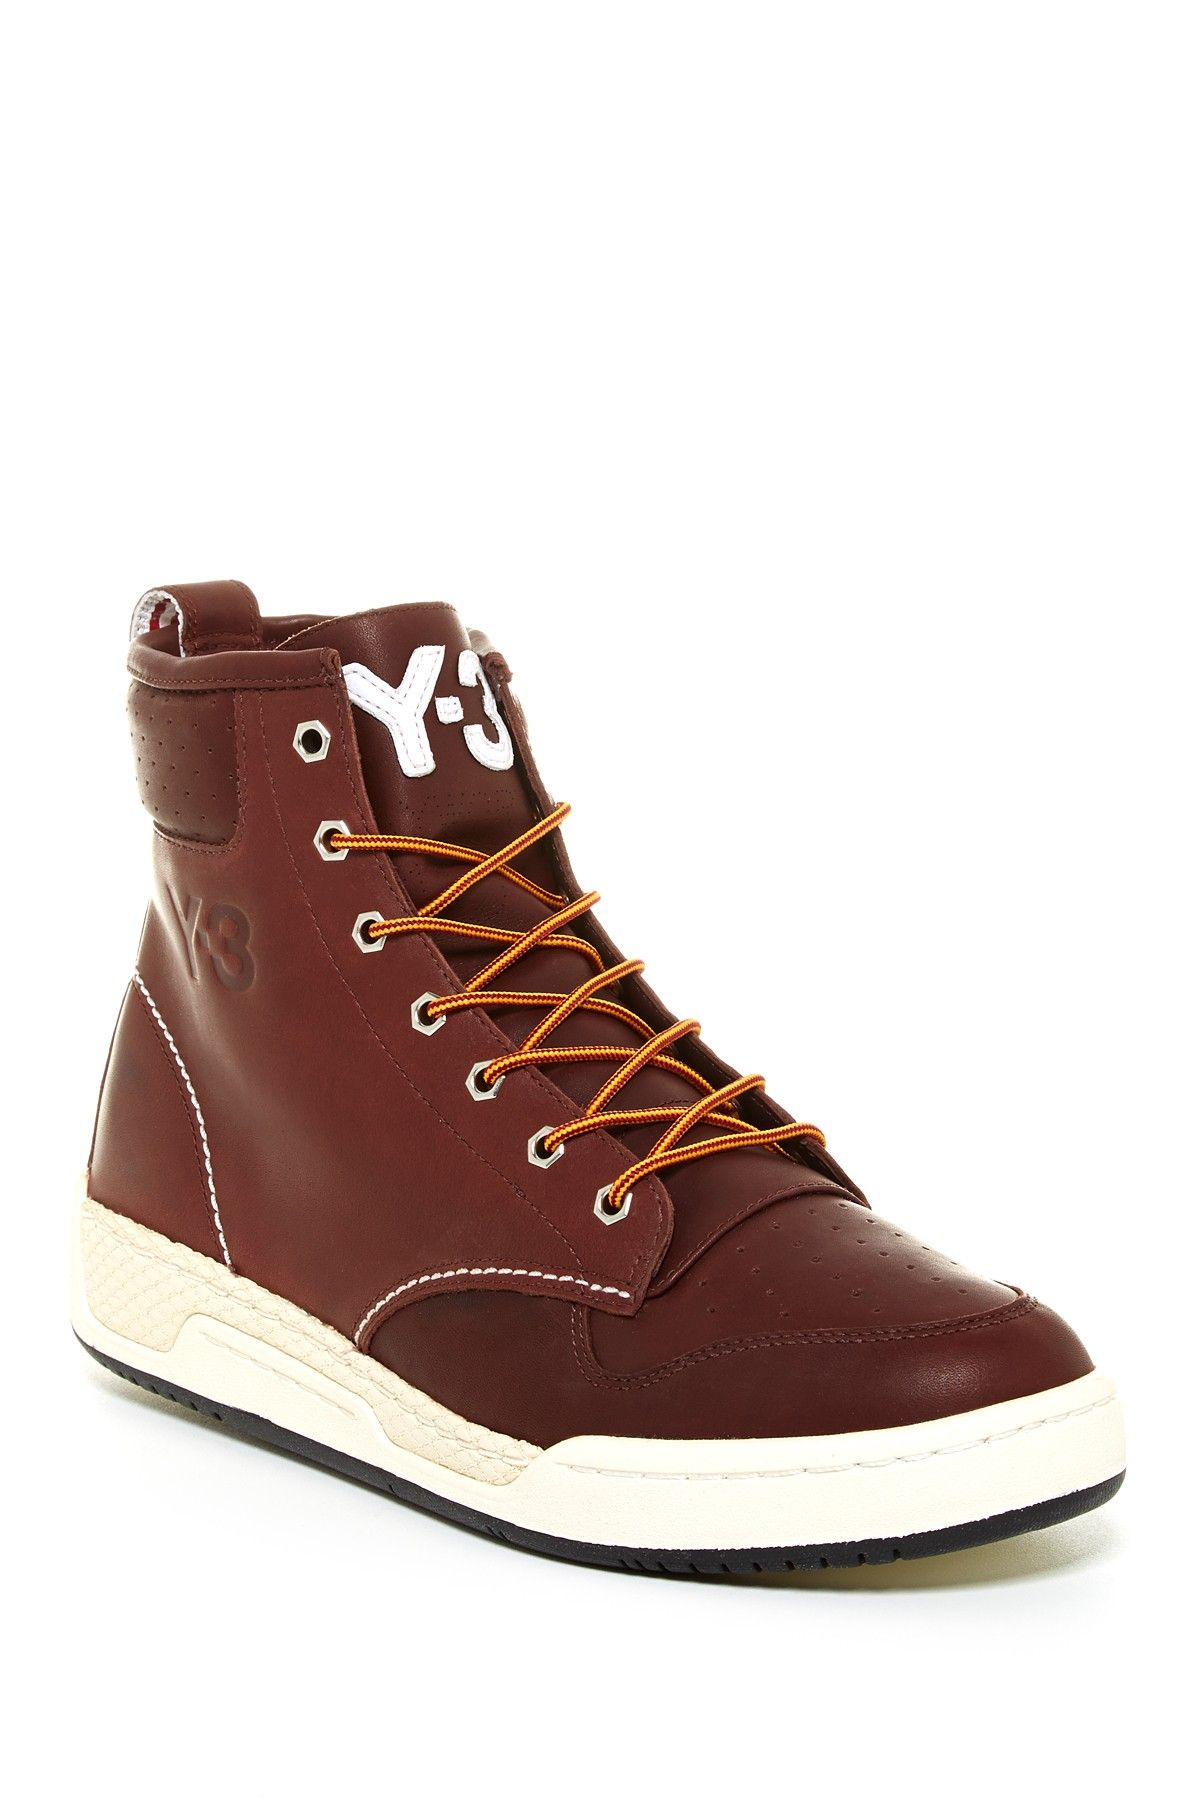 128e5638f3d6 adidas Y-3 Hayworth Classic High Top  Brown Leather. Still one of my  favorite shoes.